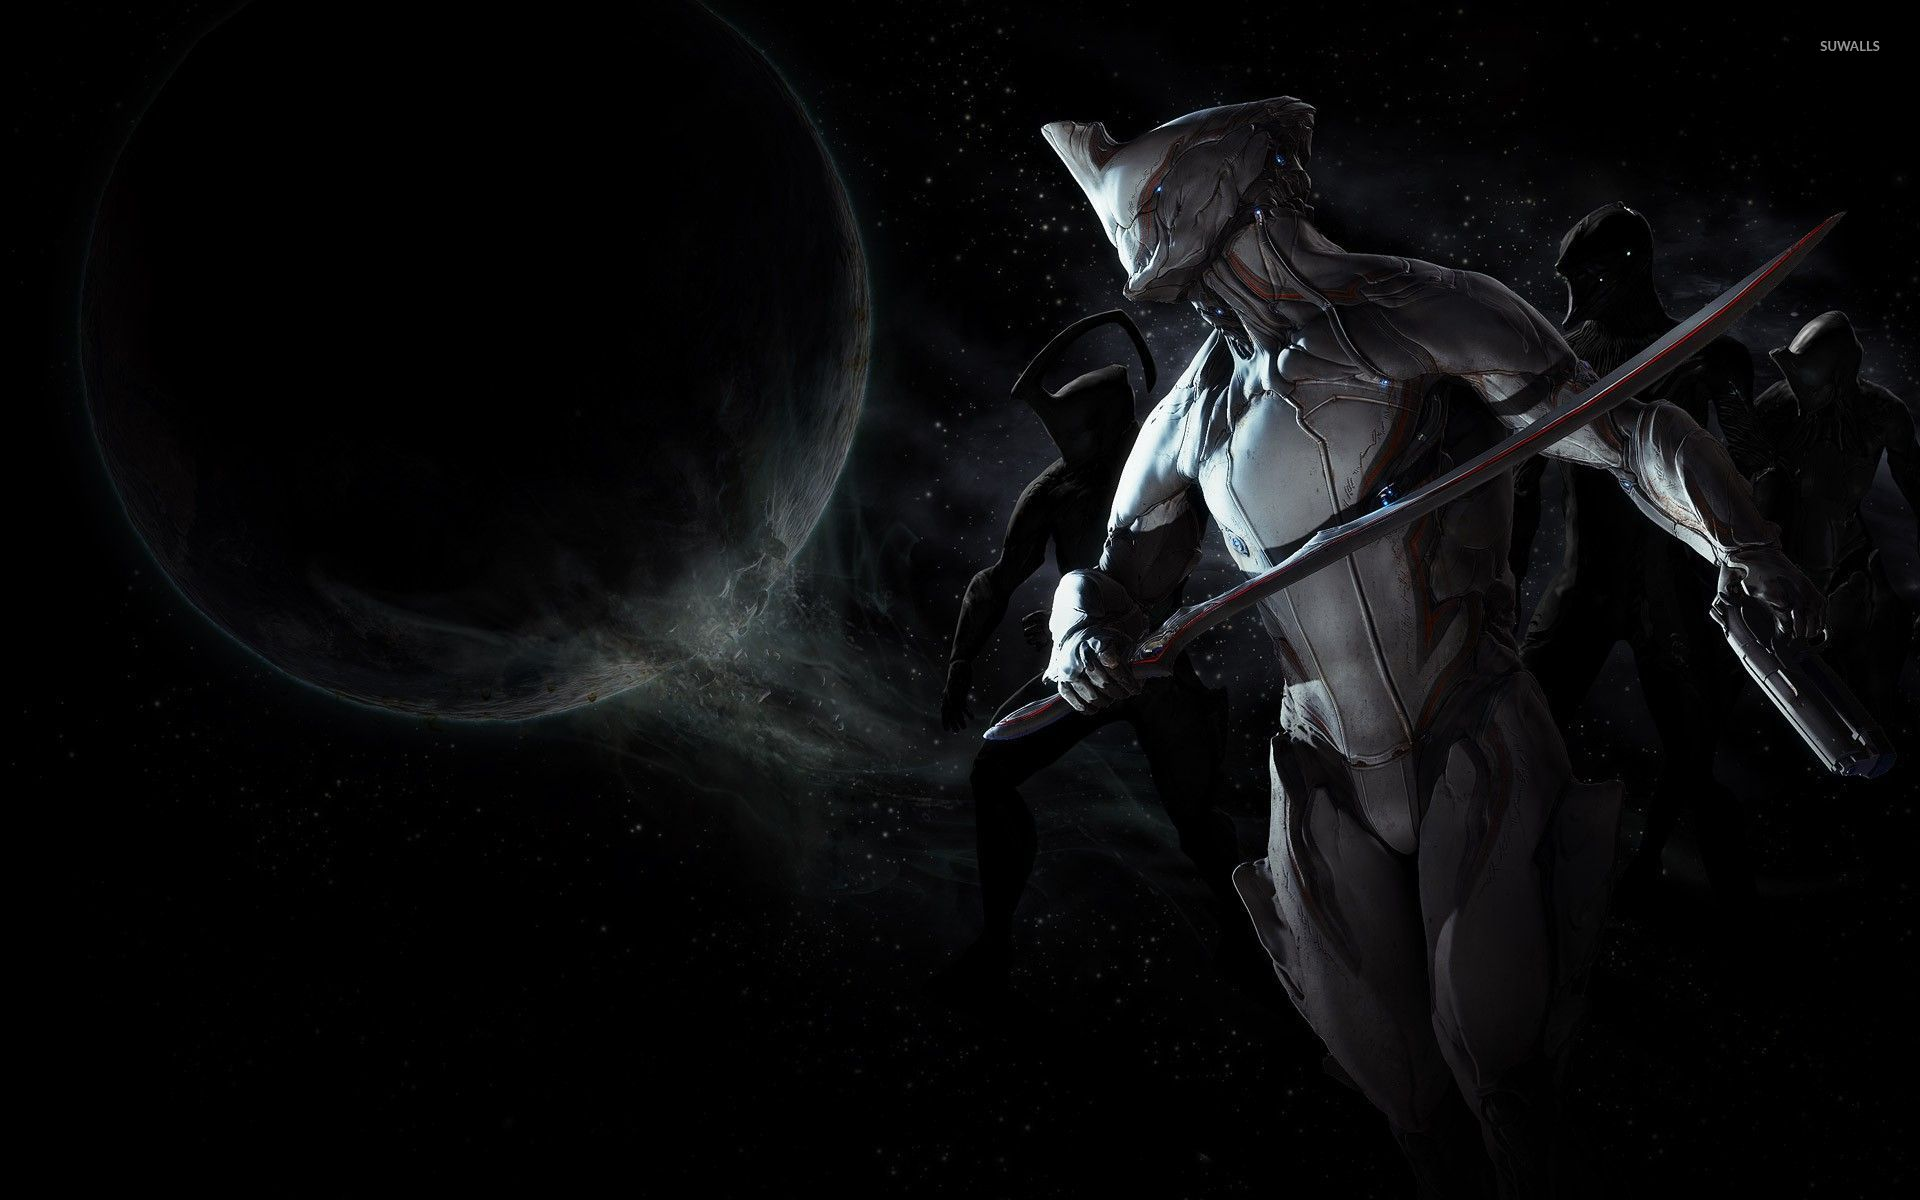 Warframe Wallpaper 1920x1200 Jpg